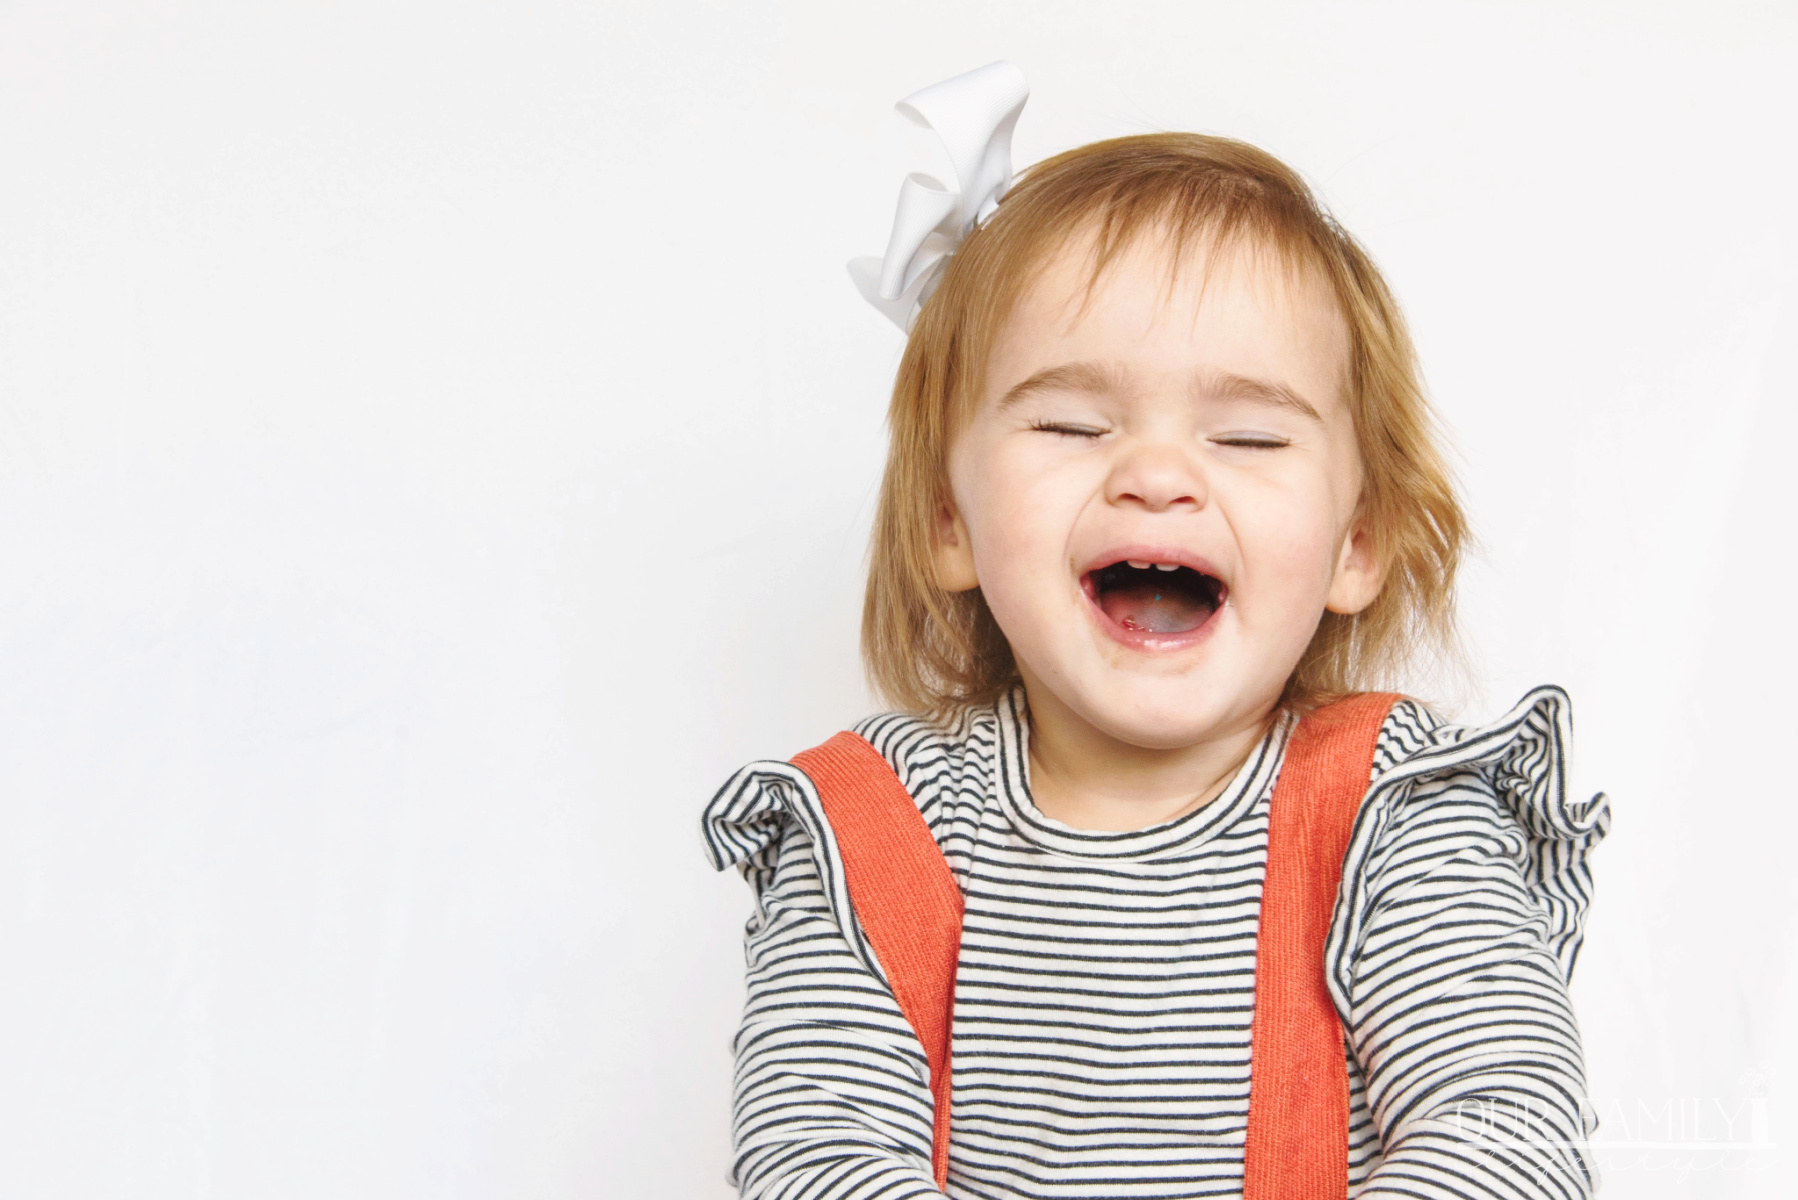 toddler granddaughter laughing with candy